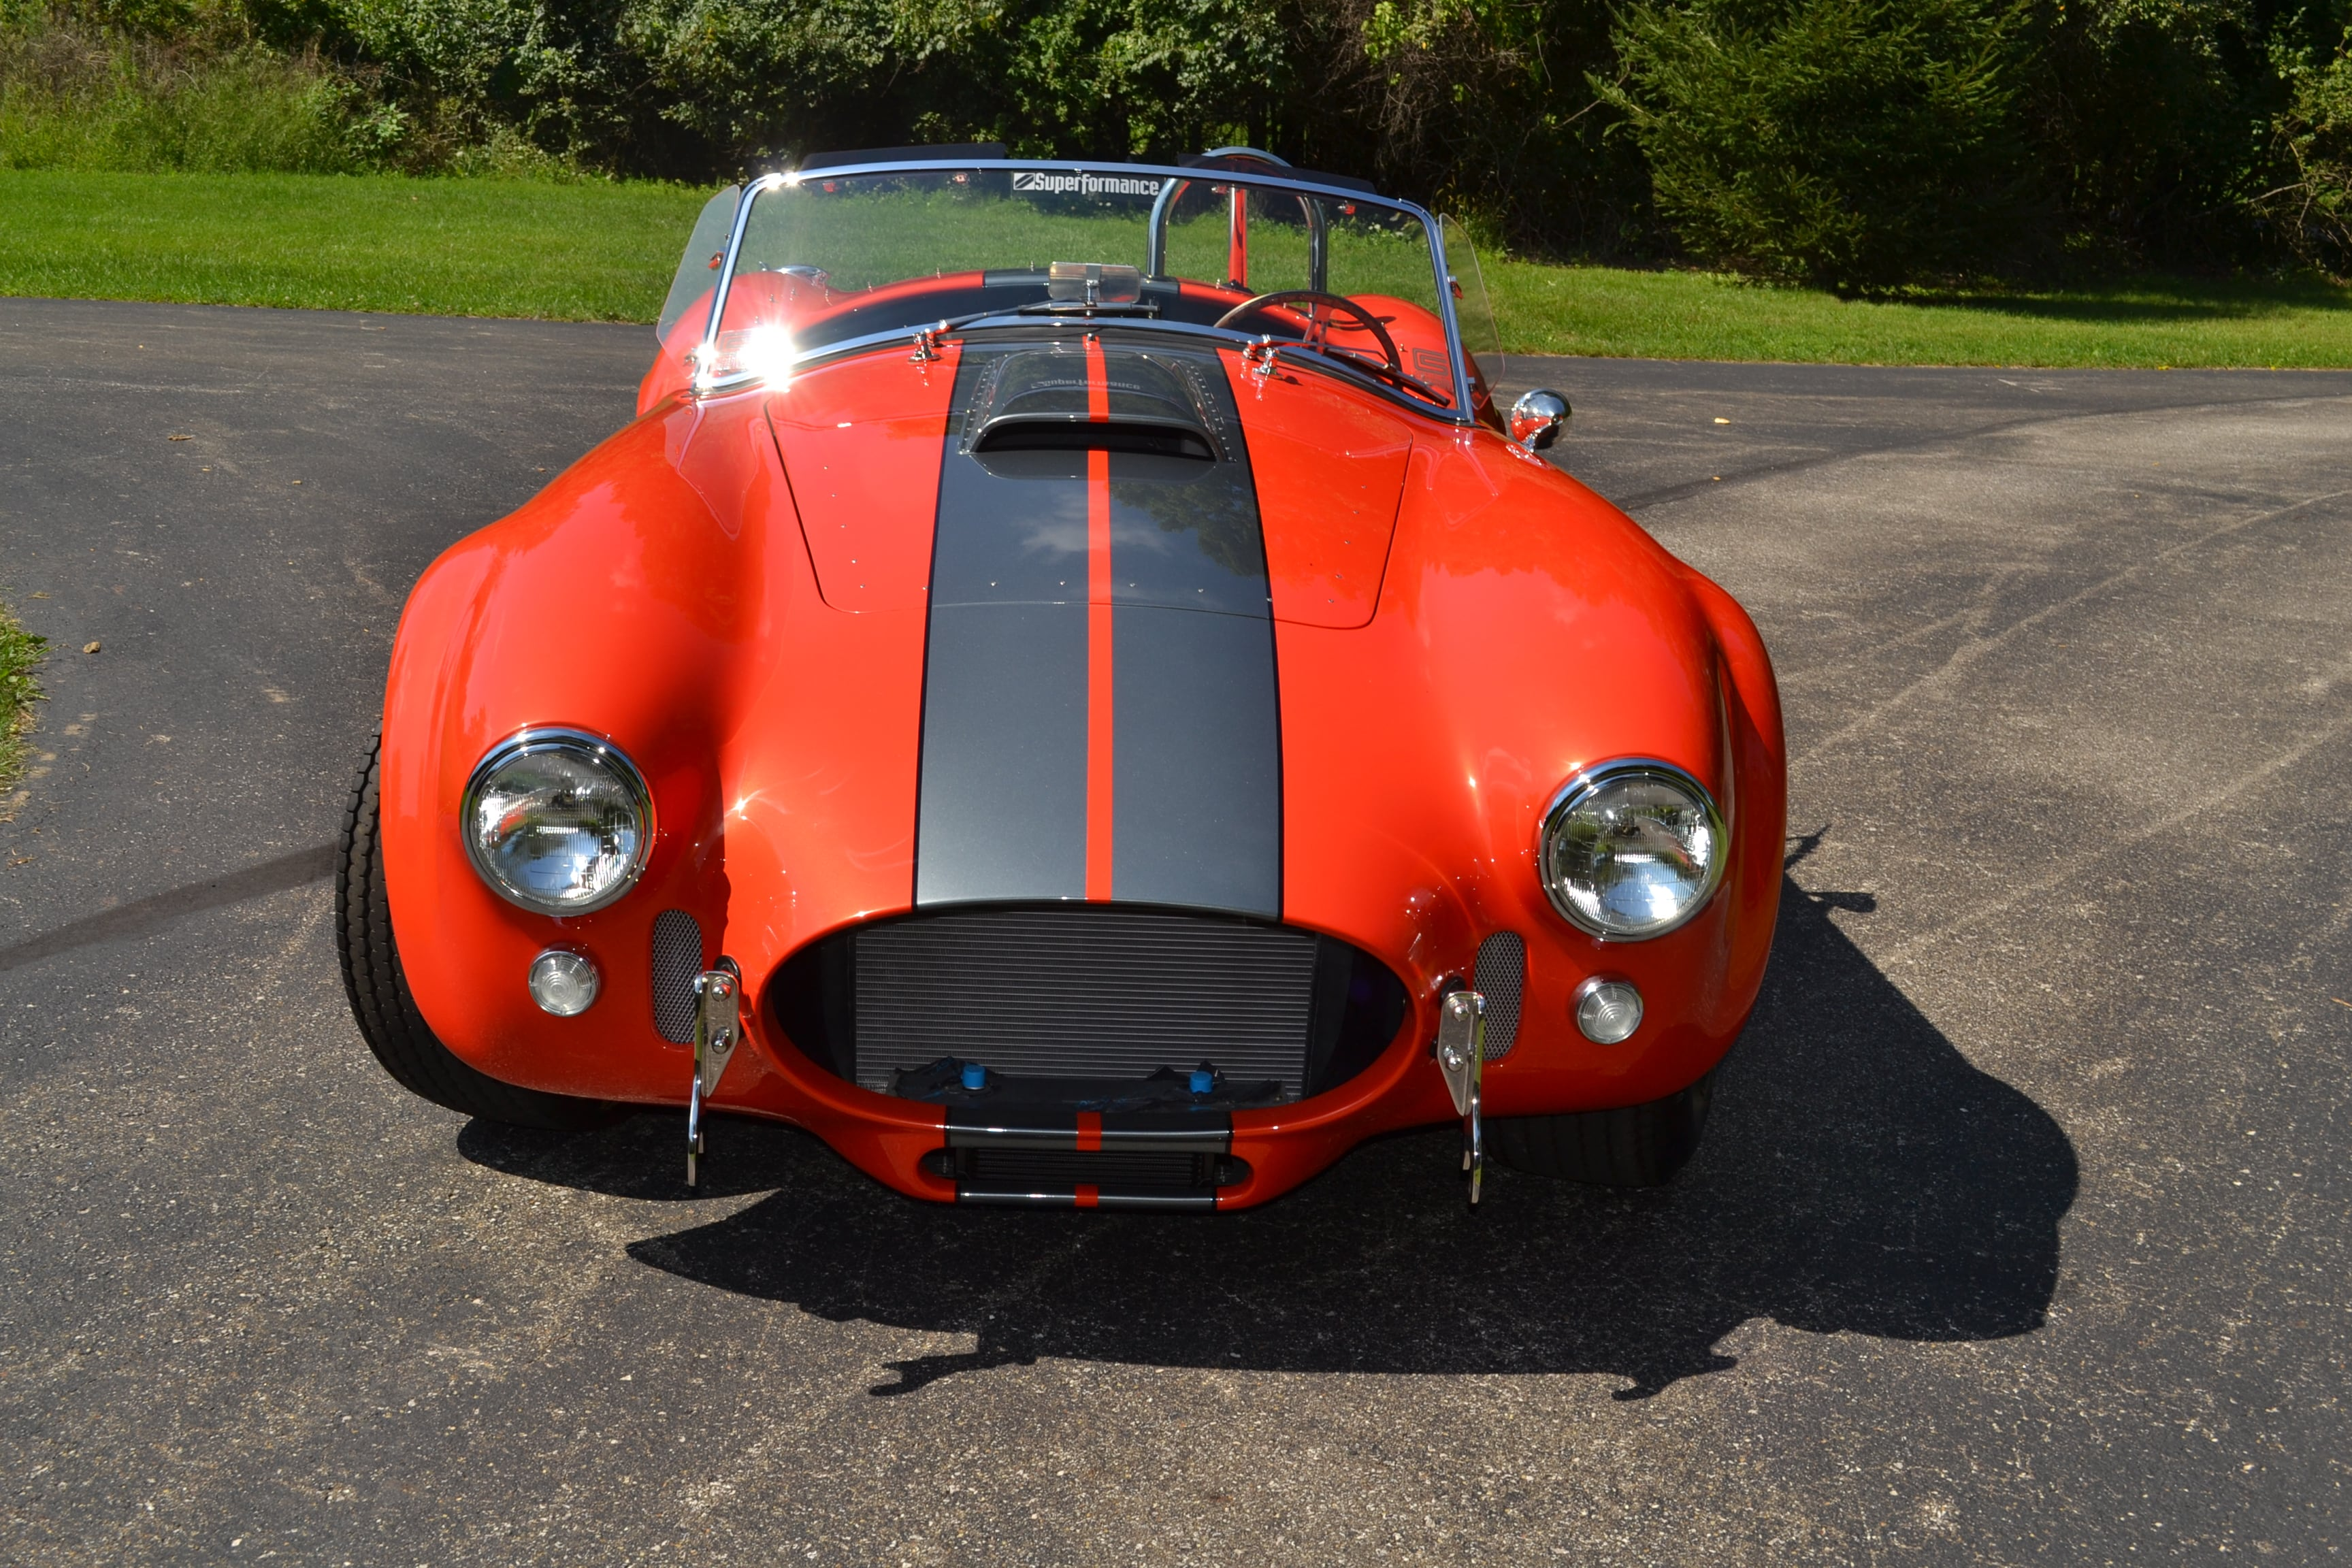 1965 New Superformance Shelby Cobra MKIII S/C Convertible For Sale |  Mansfield OH | SF162014